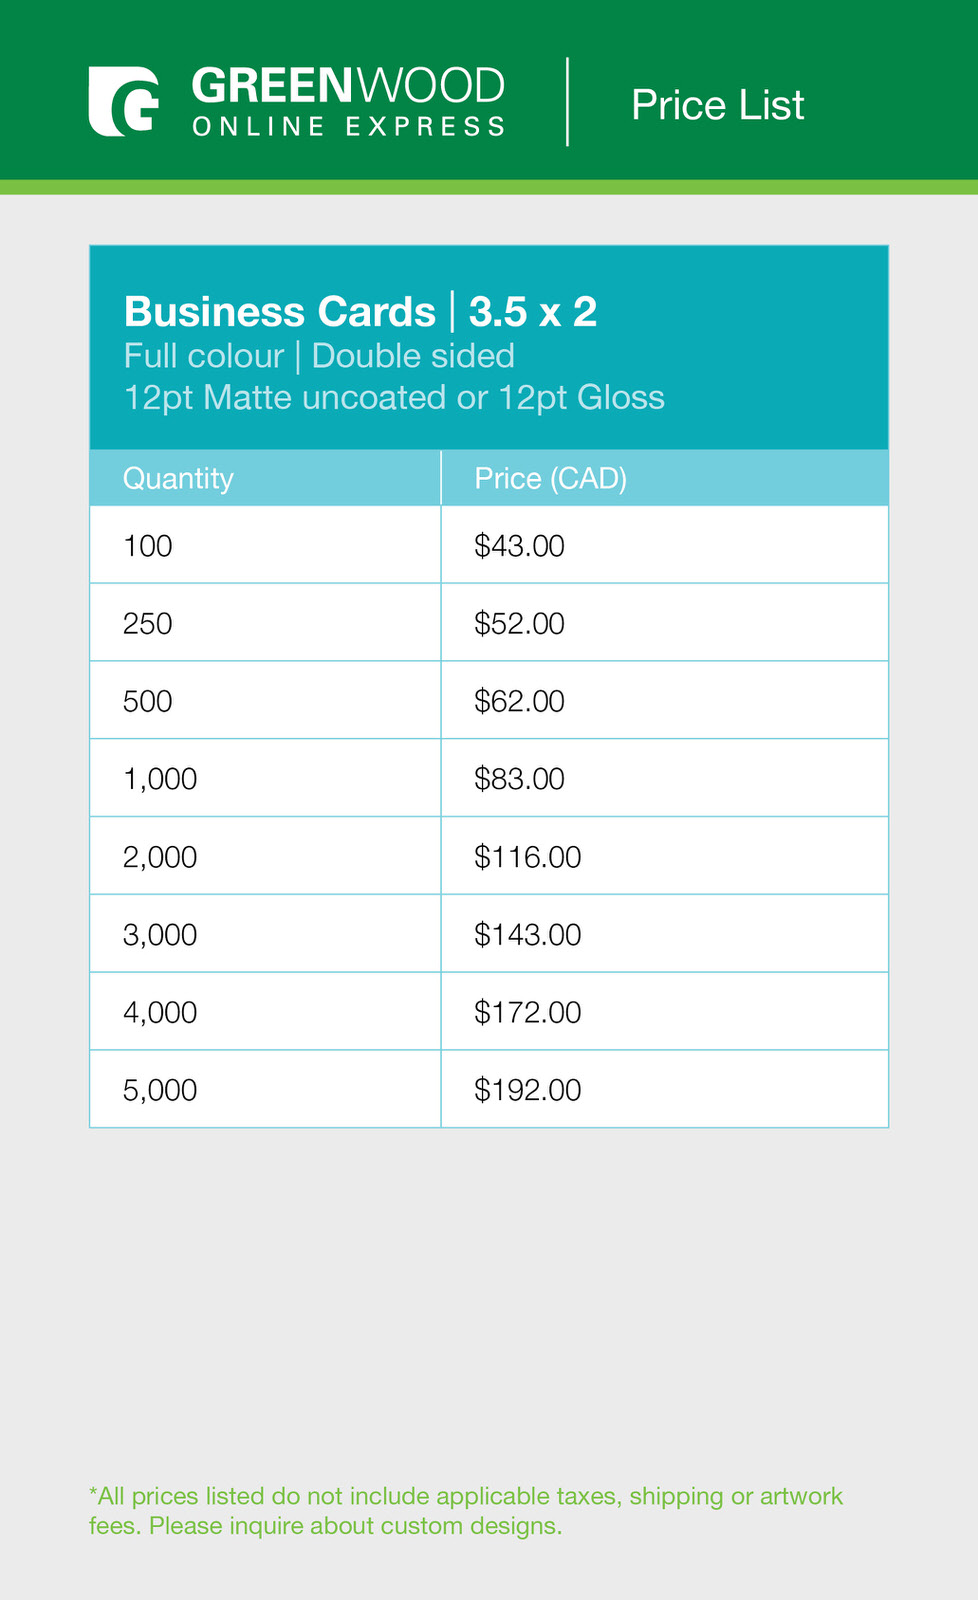 Greenwood business cards colour double sided price list.jpg